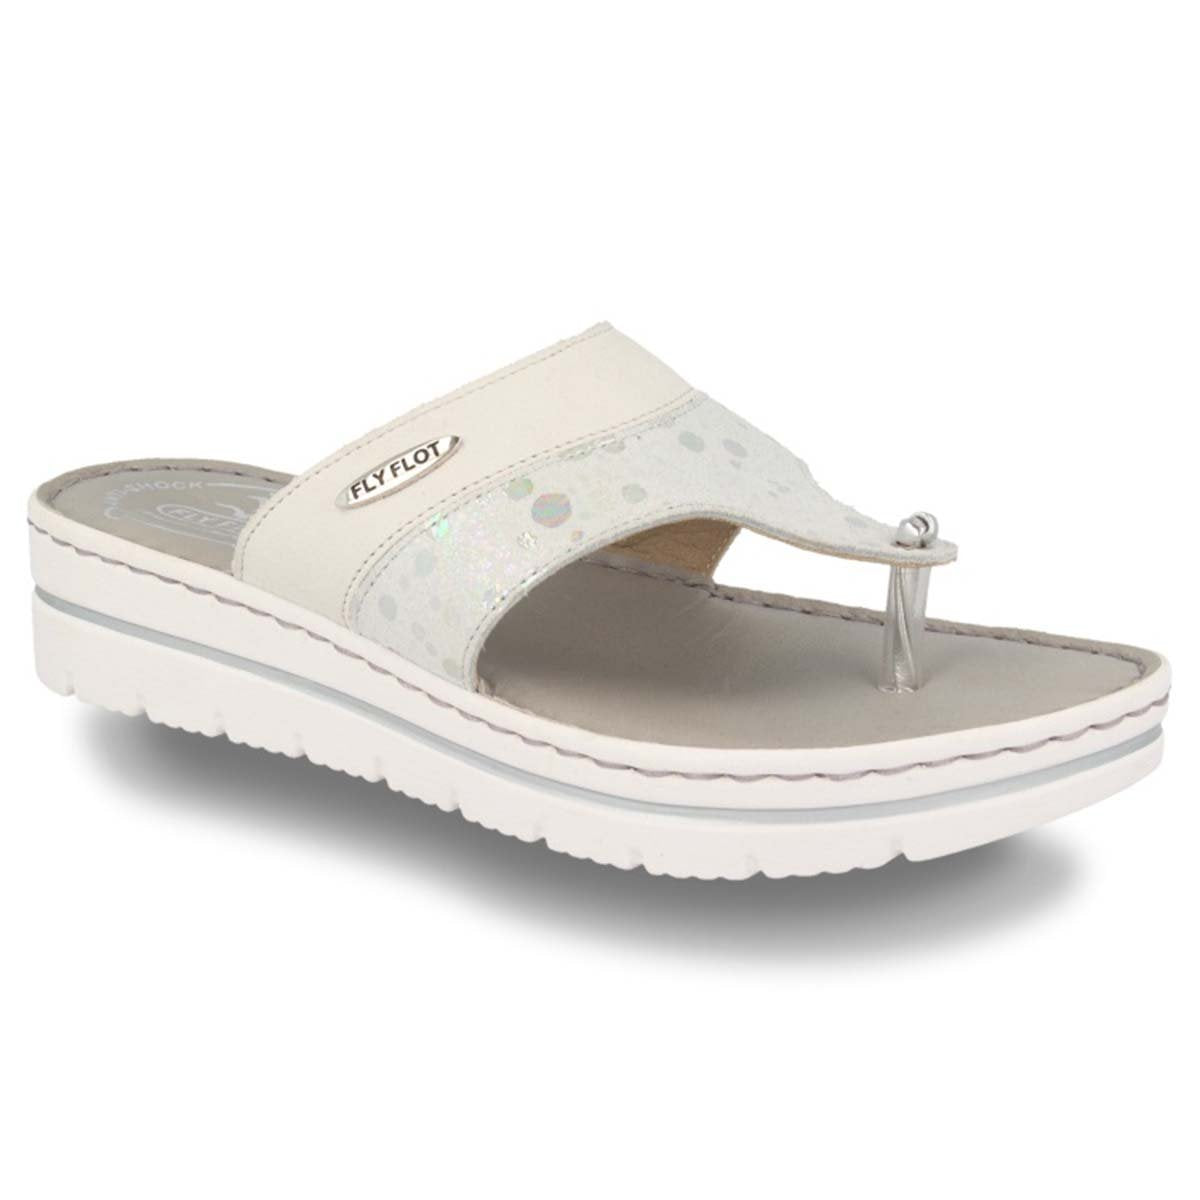 Leather Woman Slipper Light Grey  (250B80   IG)